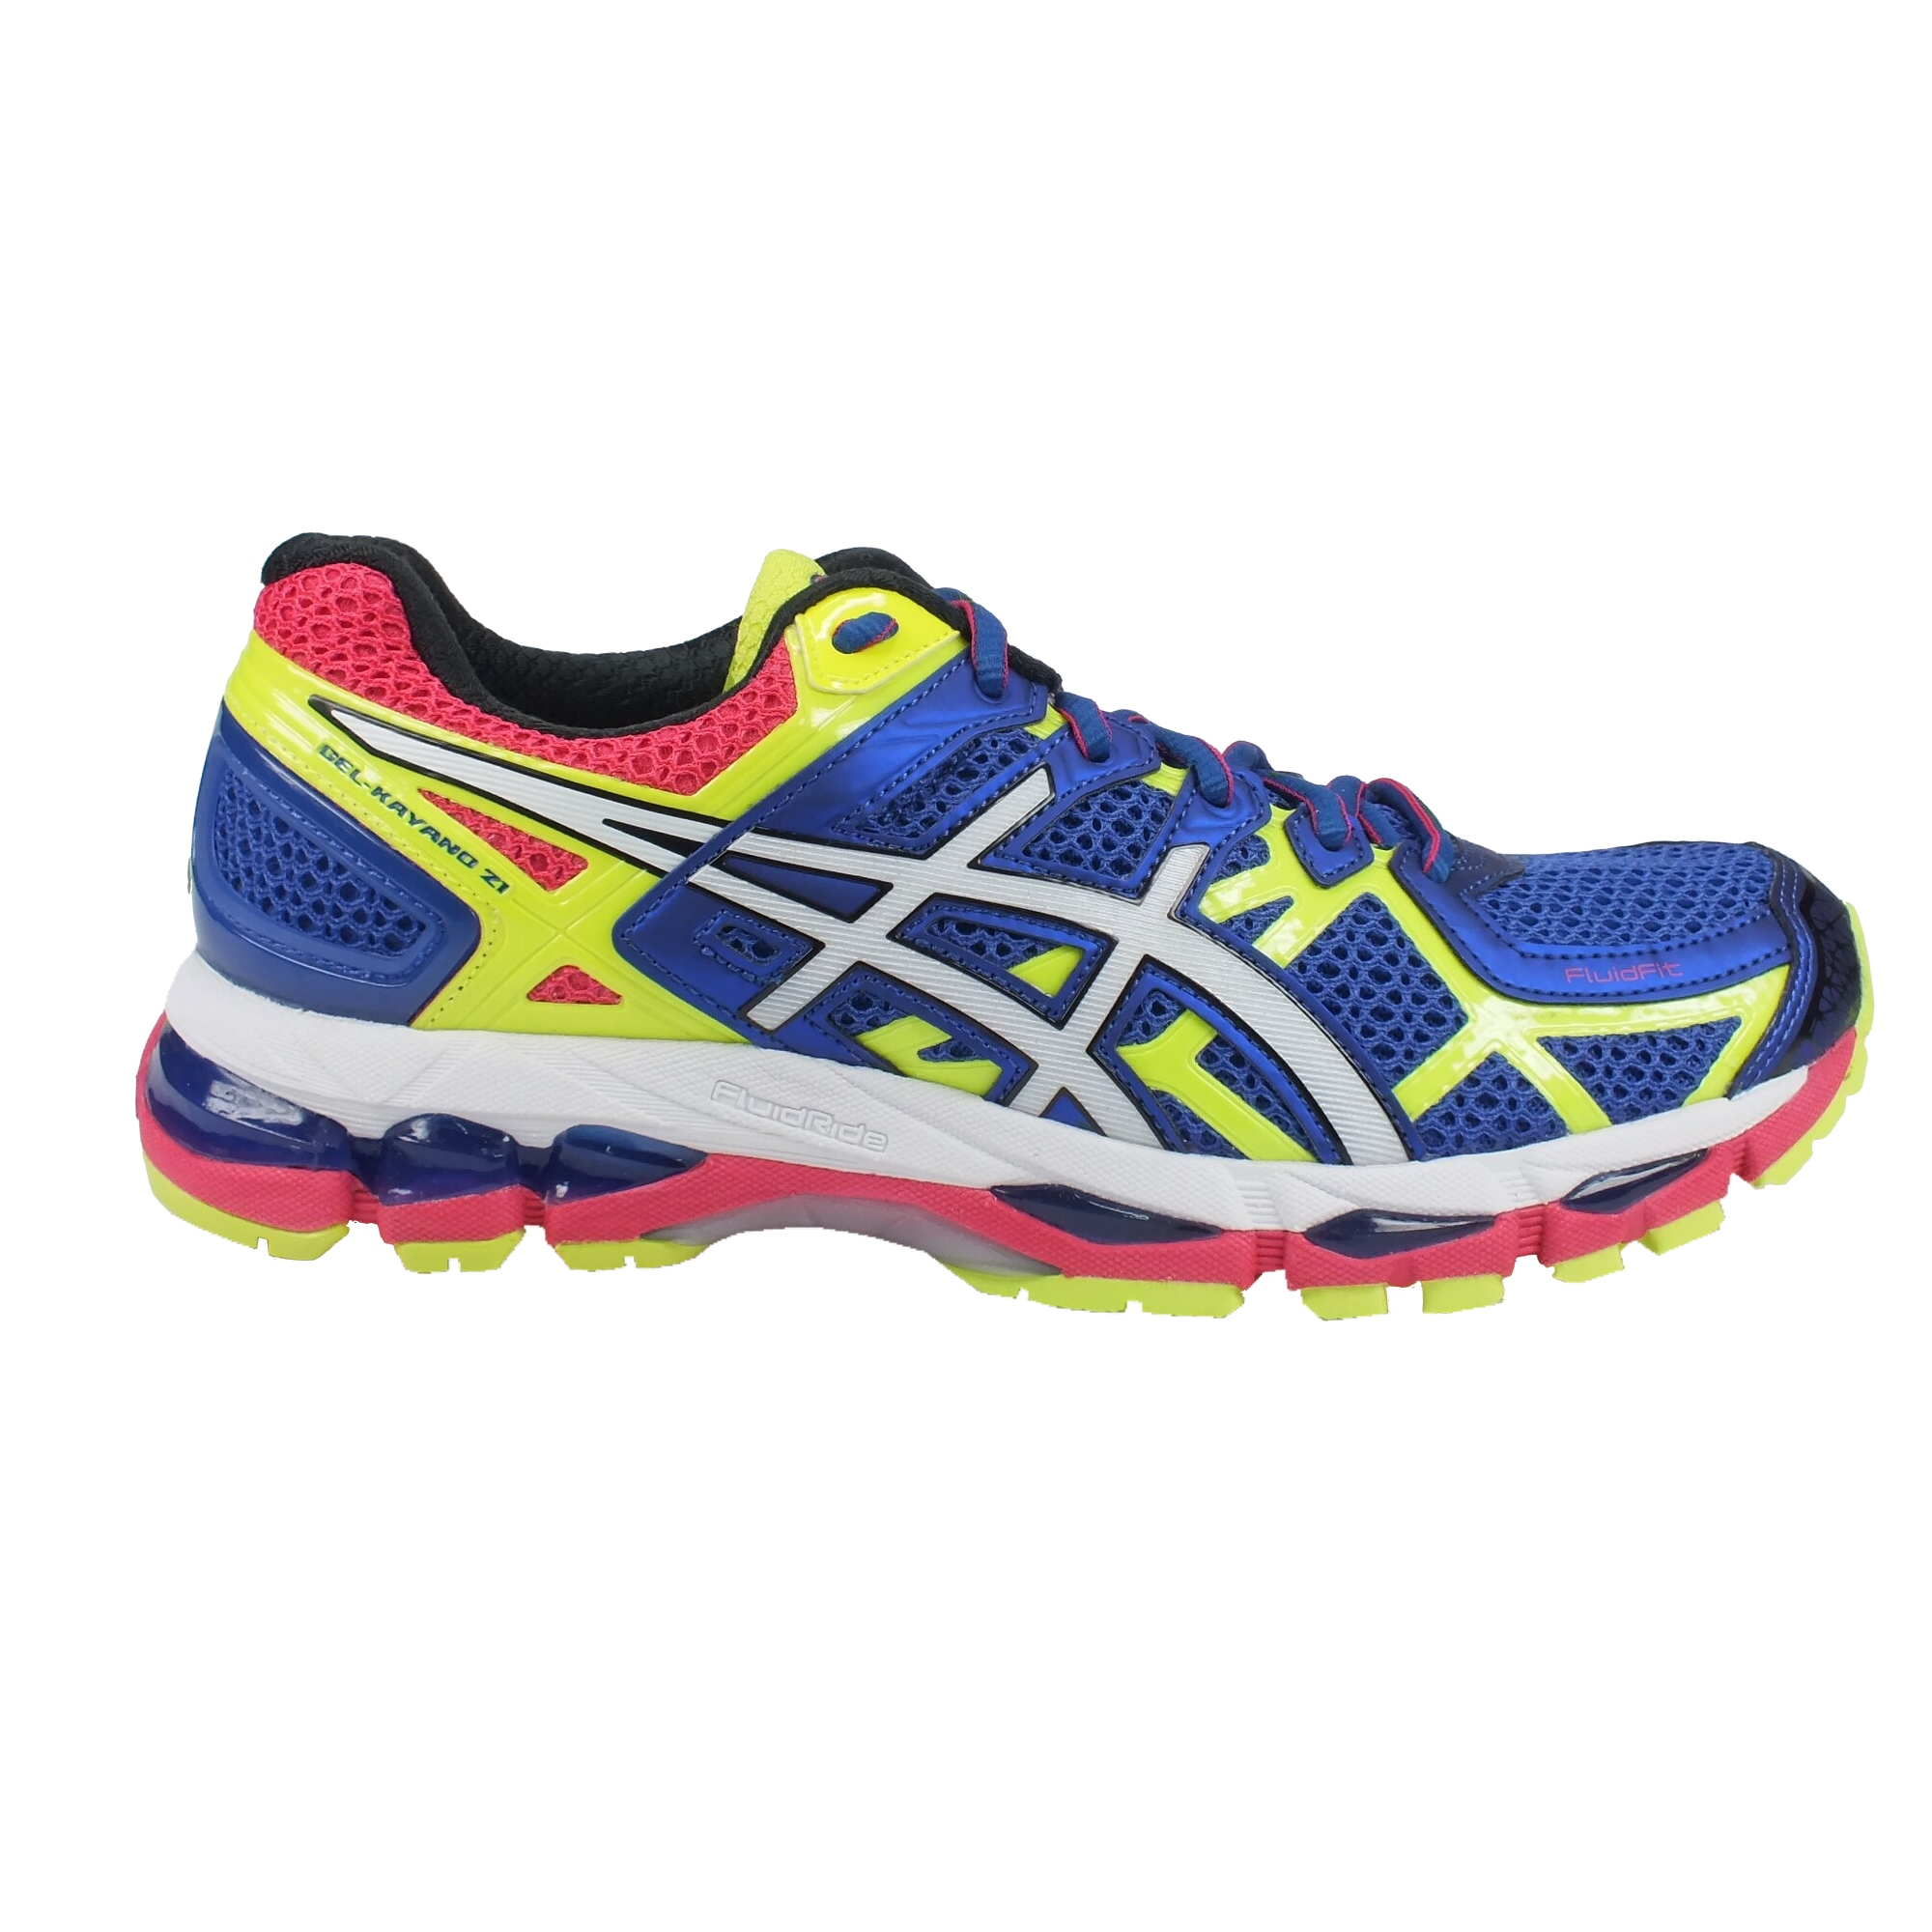 asics gel kayano 21 schuhe laufschuhe joggingschuhe. Black Bedroom Furniture Sets. Home Design Ideas